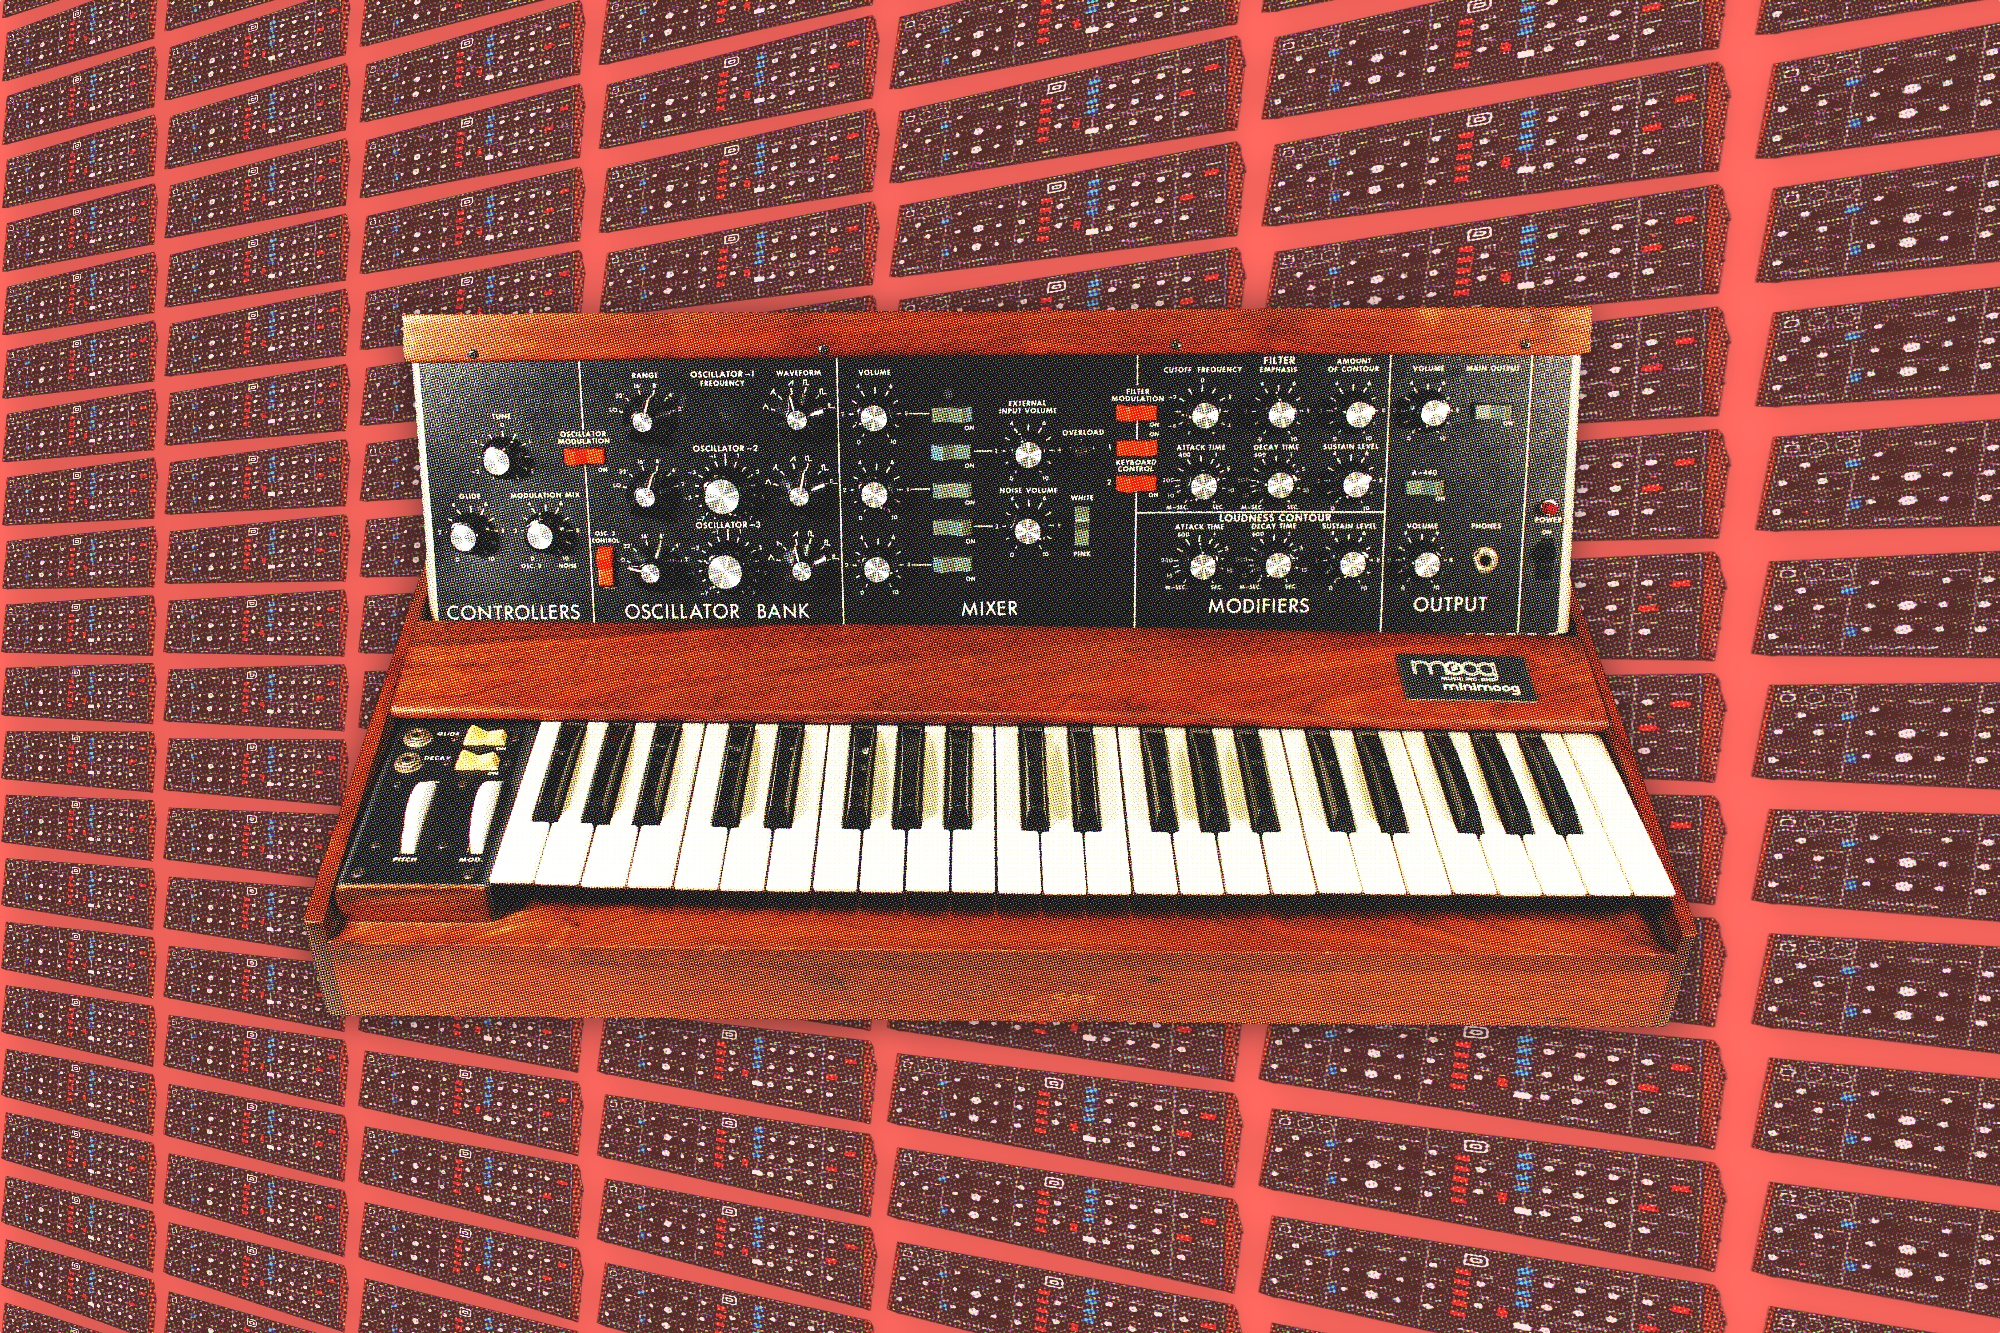 Attack of the clones: Is Behringer's Minimoog a synth replica too far?